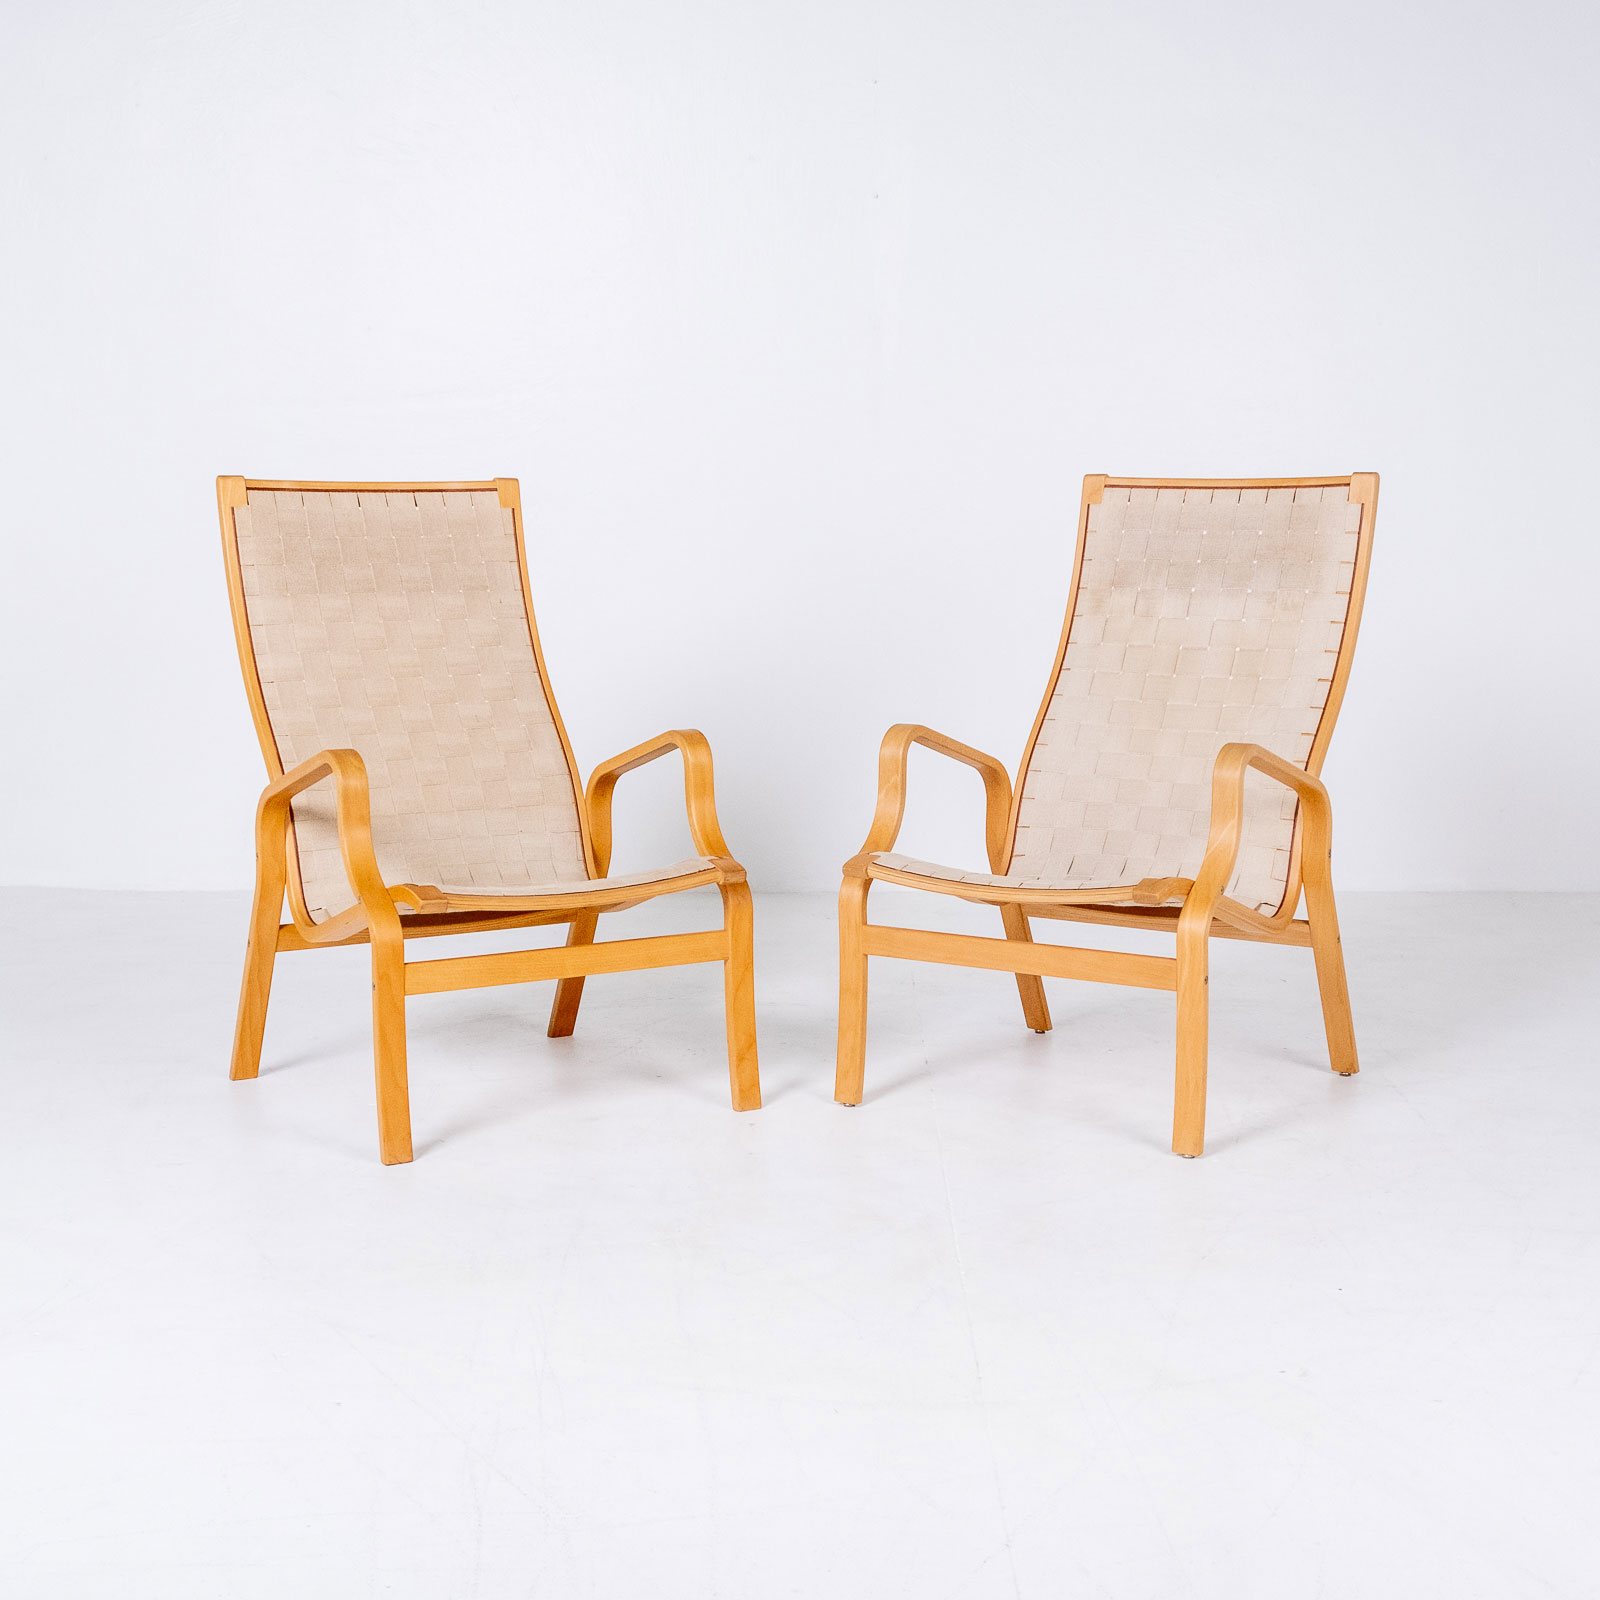 Armchair In The Style Of Bruno Mathsson, 1960s, Sweden6